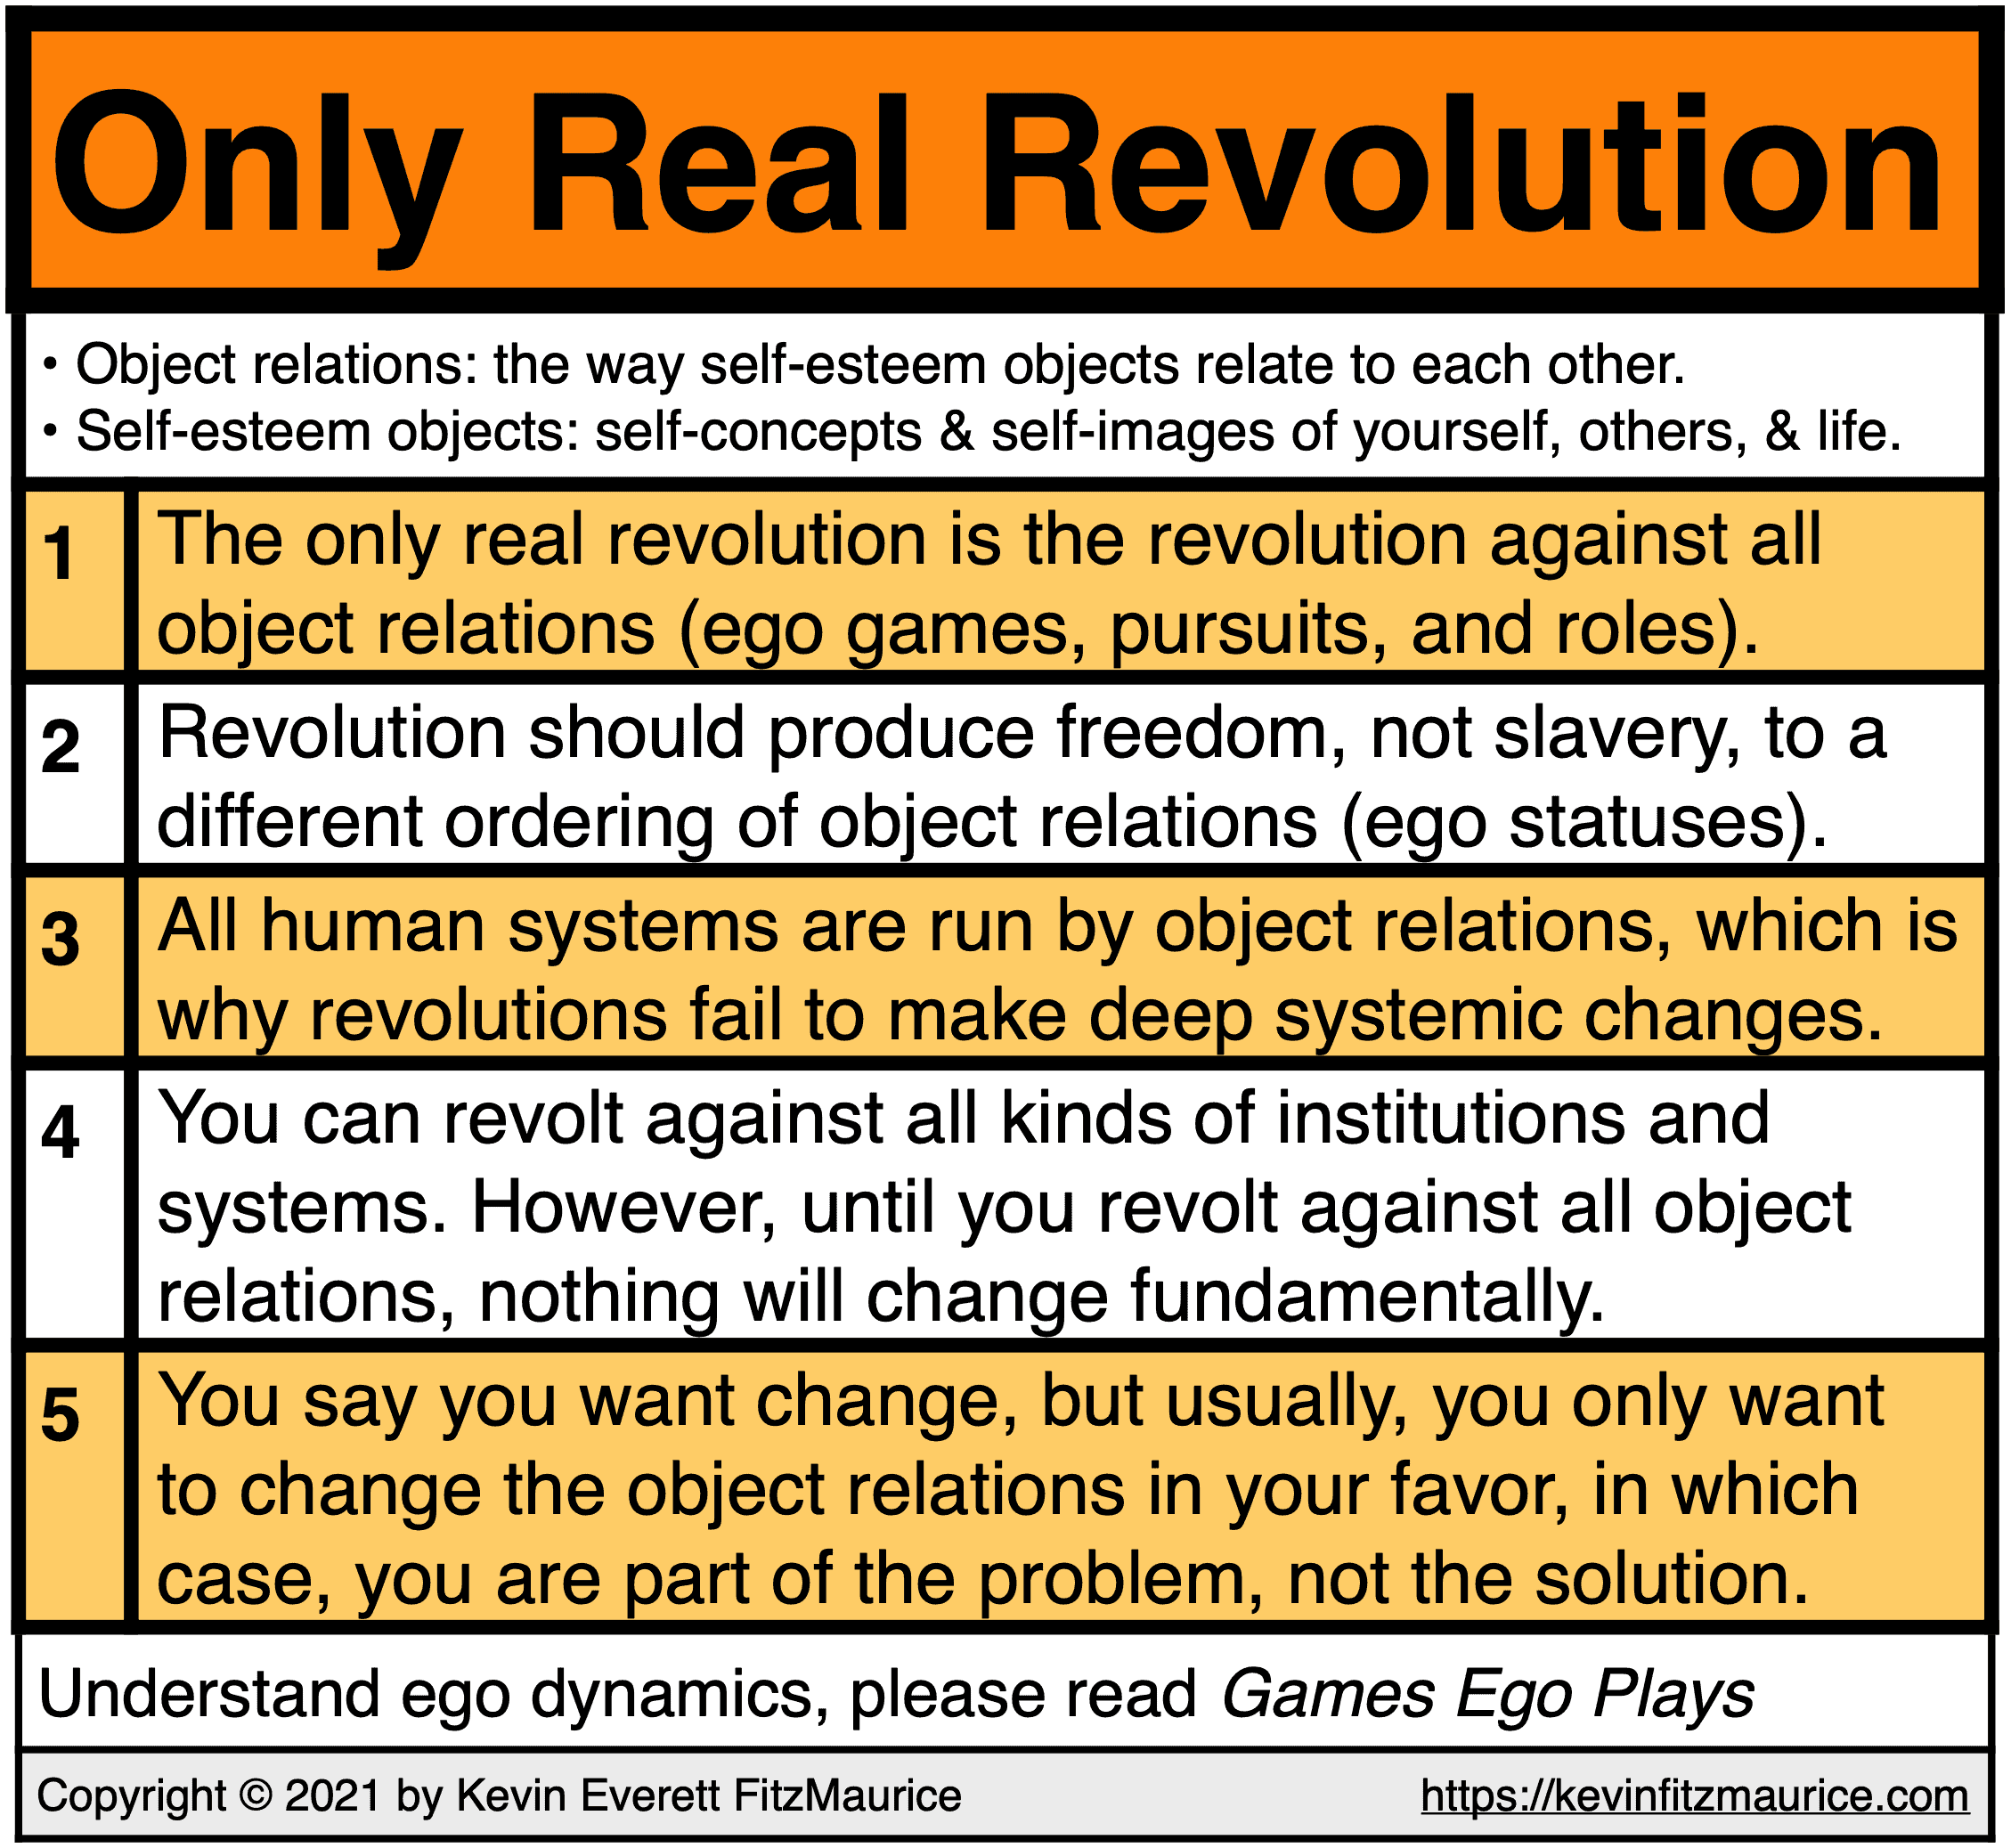 The Only Real Revolution Is the Revolution Against Object Relations